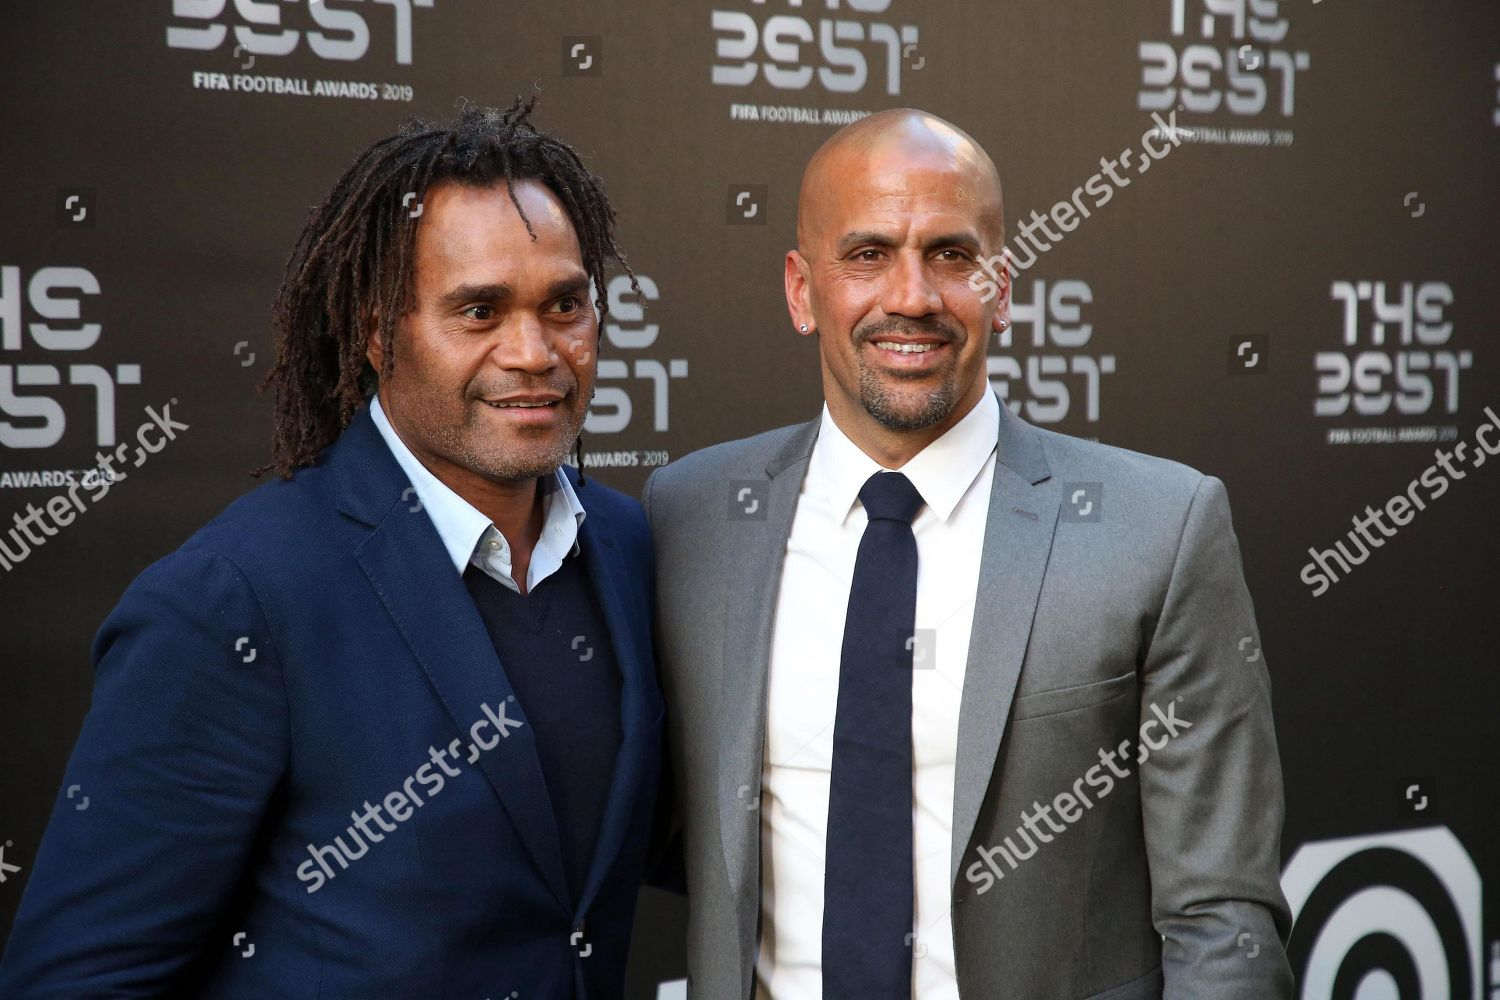 Stock photo of The Best FIFA Football Awards 2019, Milan, Italy - 23 Sep 2019